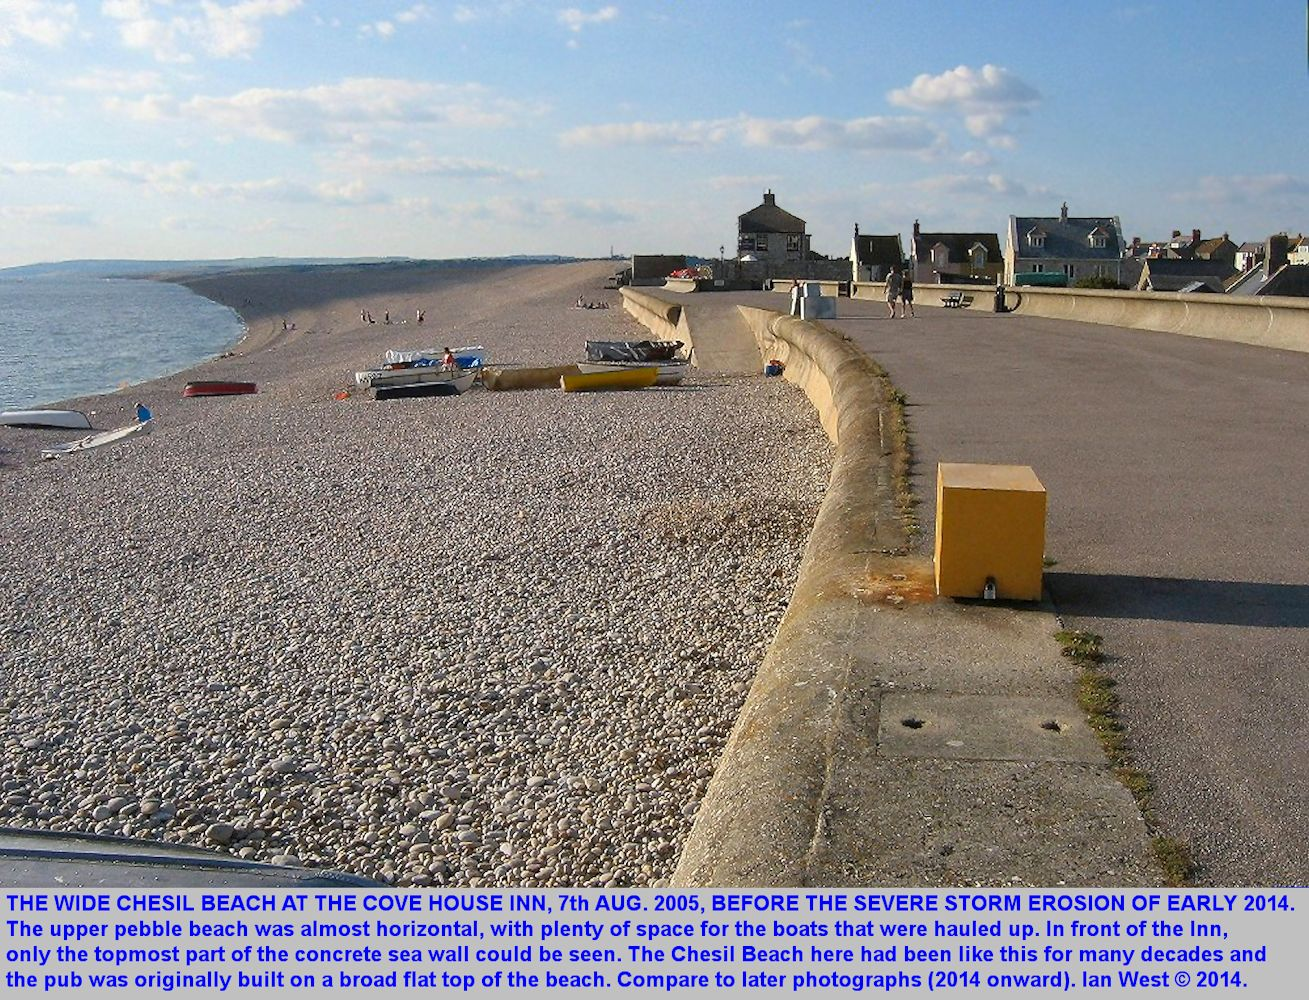 The Chesil Beach at the Cove House Inn on the 7th August 2005, at 6.41pm, Chiswell, Isle of Portland, Dorset, to show the situation before the erosion of early 2014